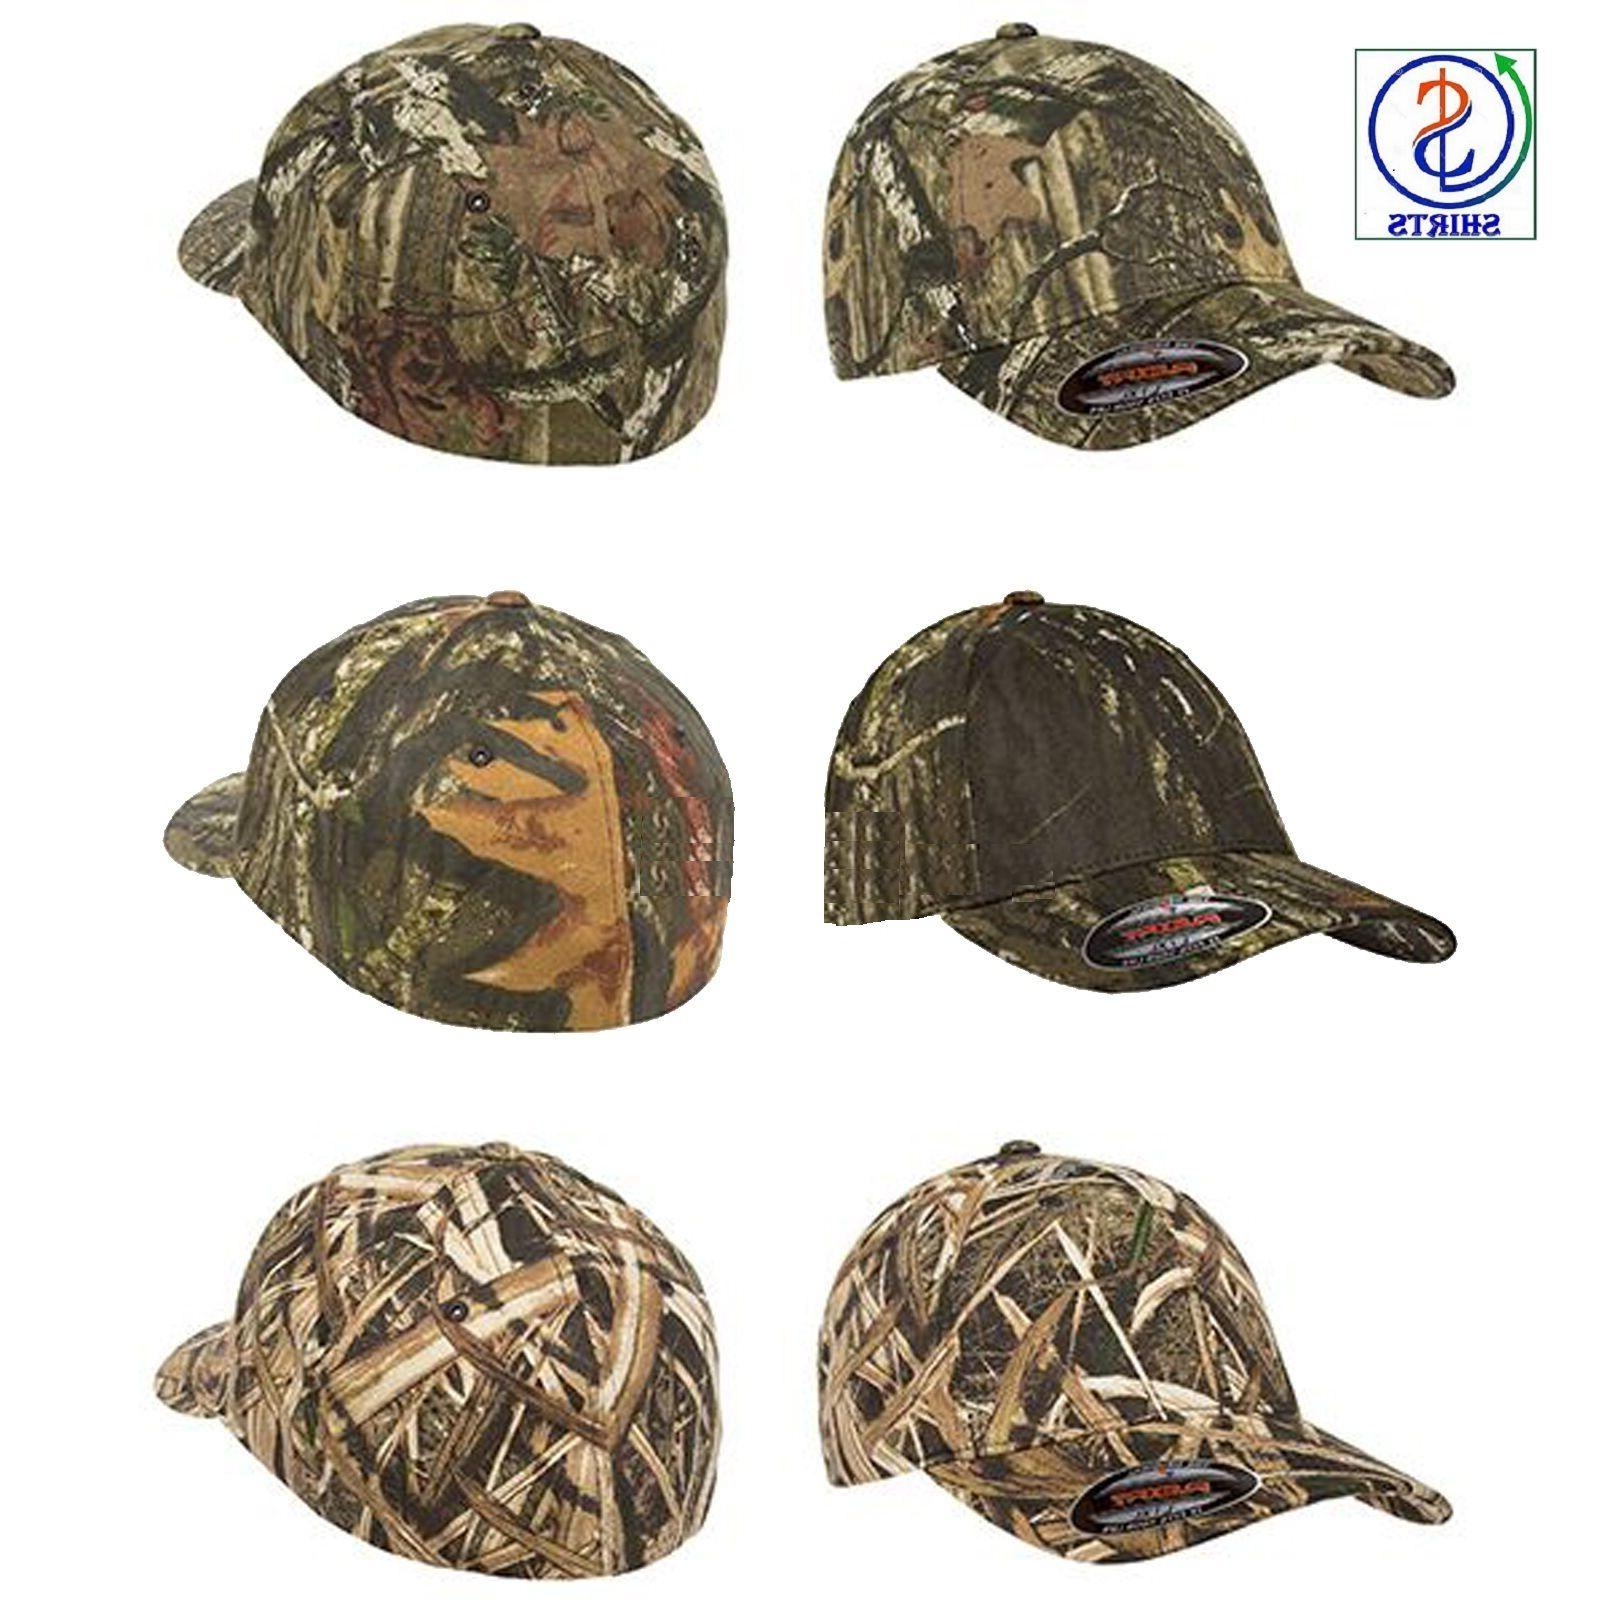 New Flexfit 6999 Mossy Oak Infinity Camo Fitted Caps Hats S/